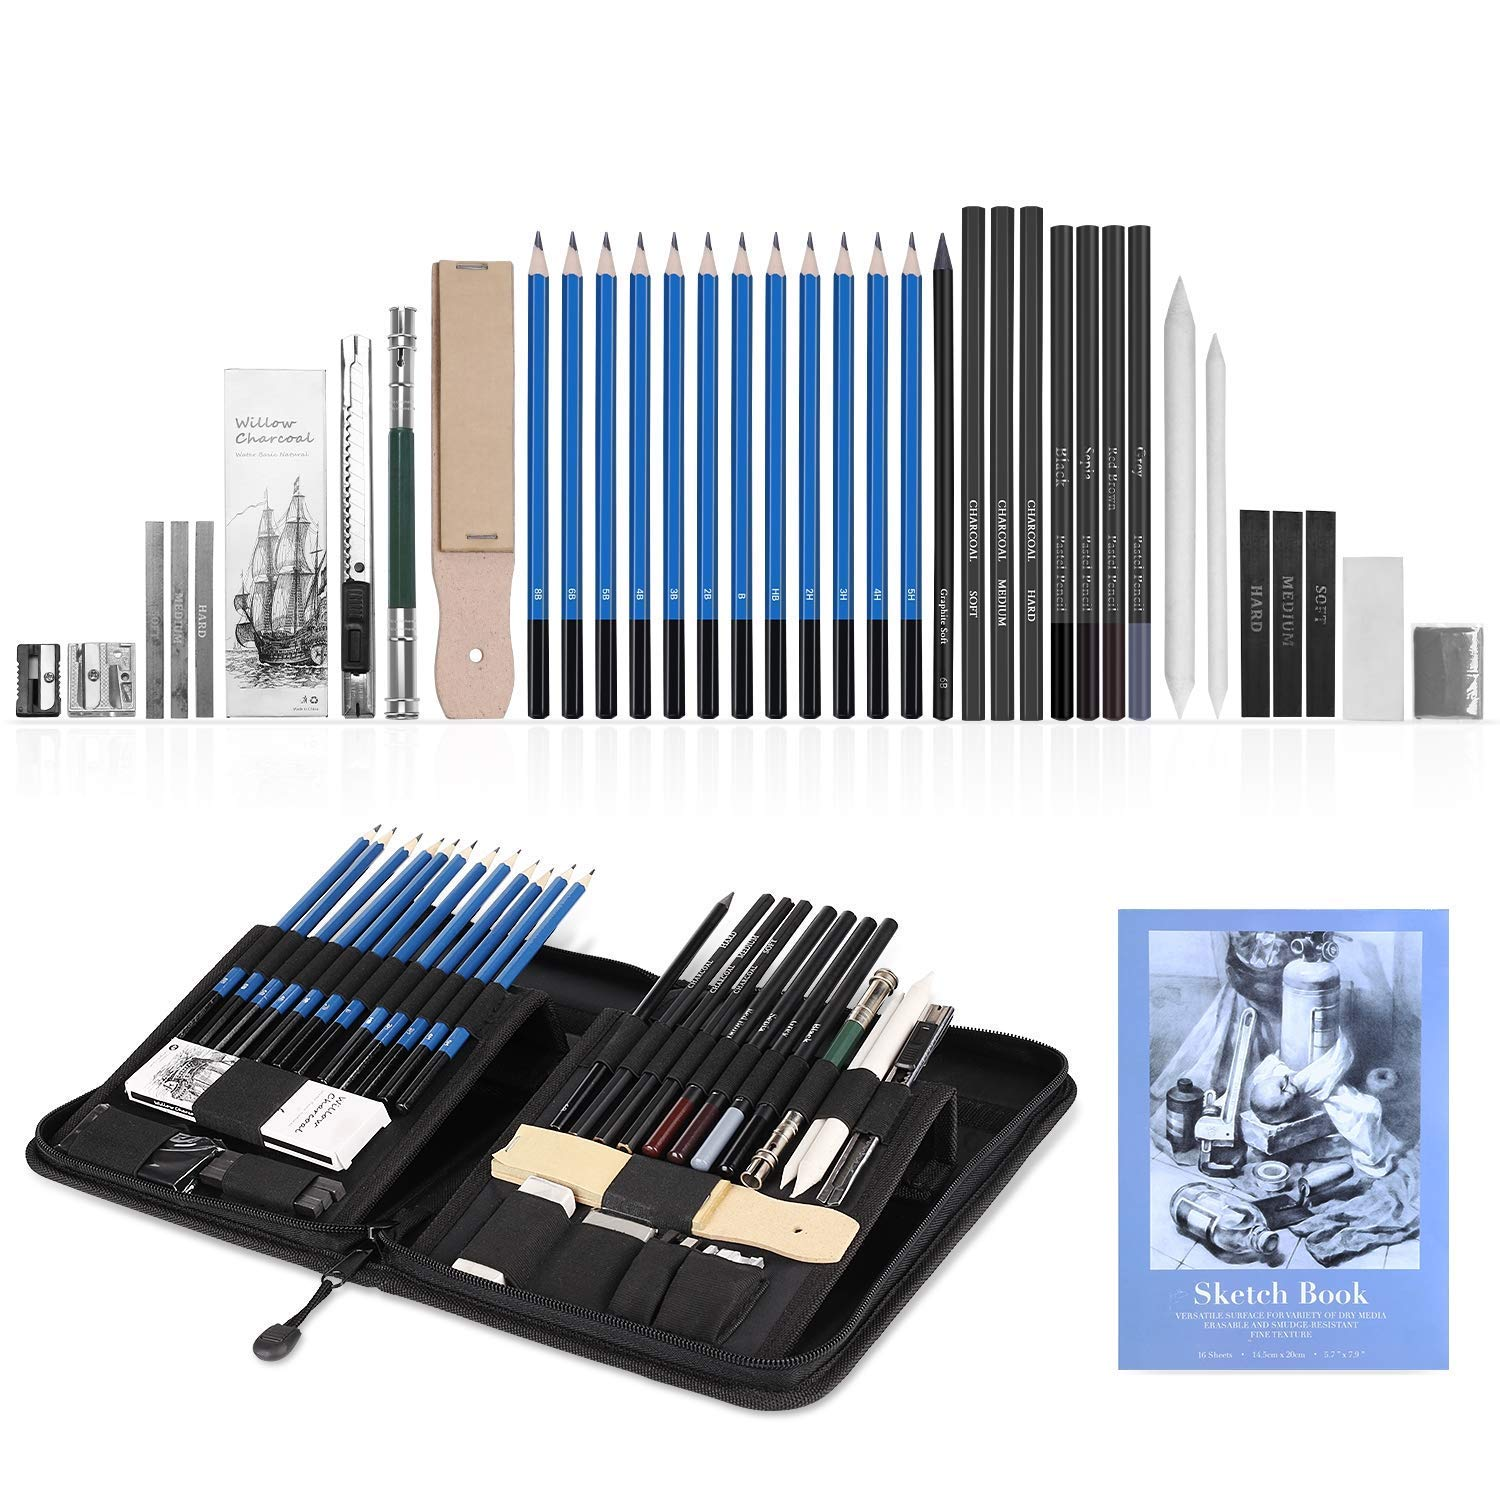 GHB 41Pcs Drawing Pencils Sketching Set Graphite Charcoal Pencils Art Supplies with Pop-Up Stand Erasers Zippered Carry Case Sketch Book